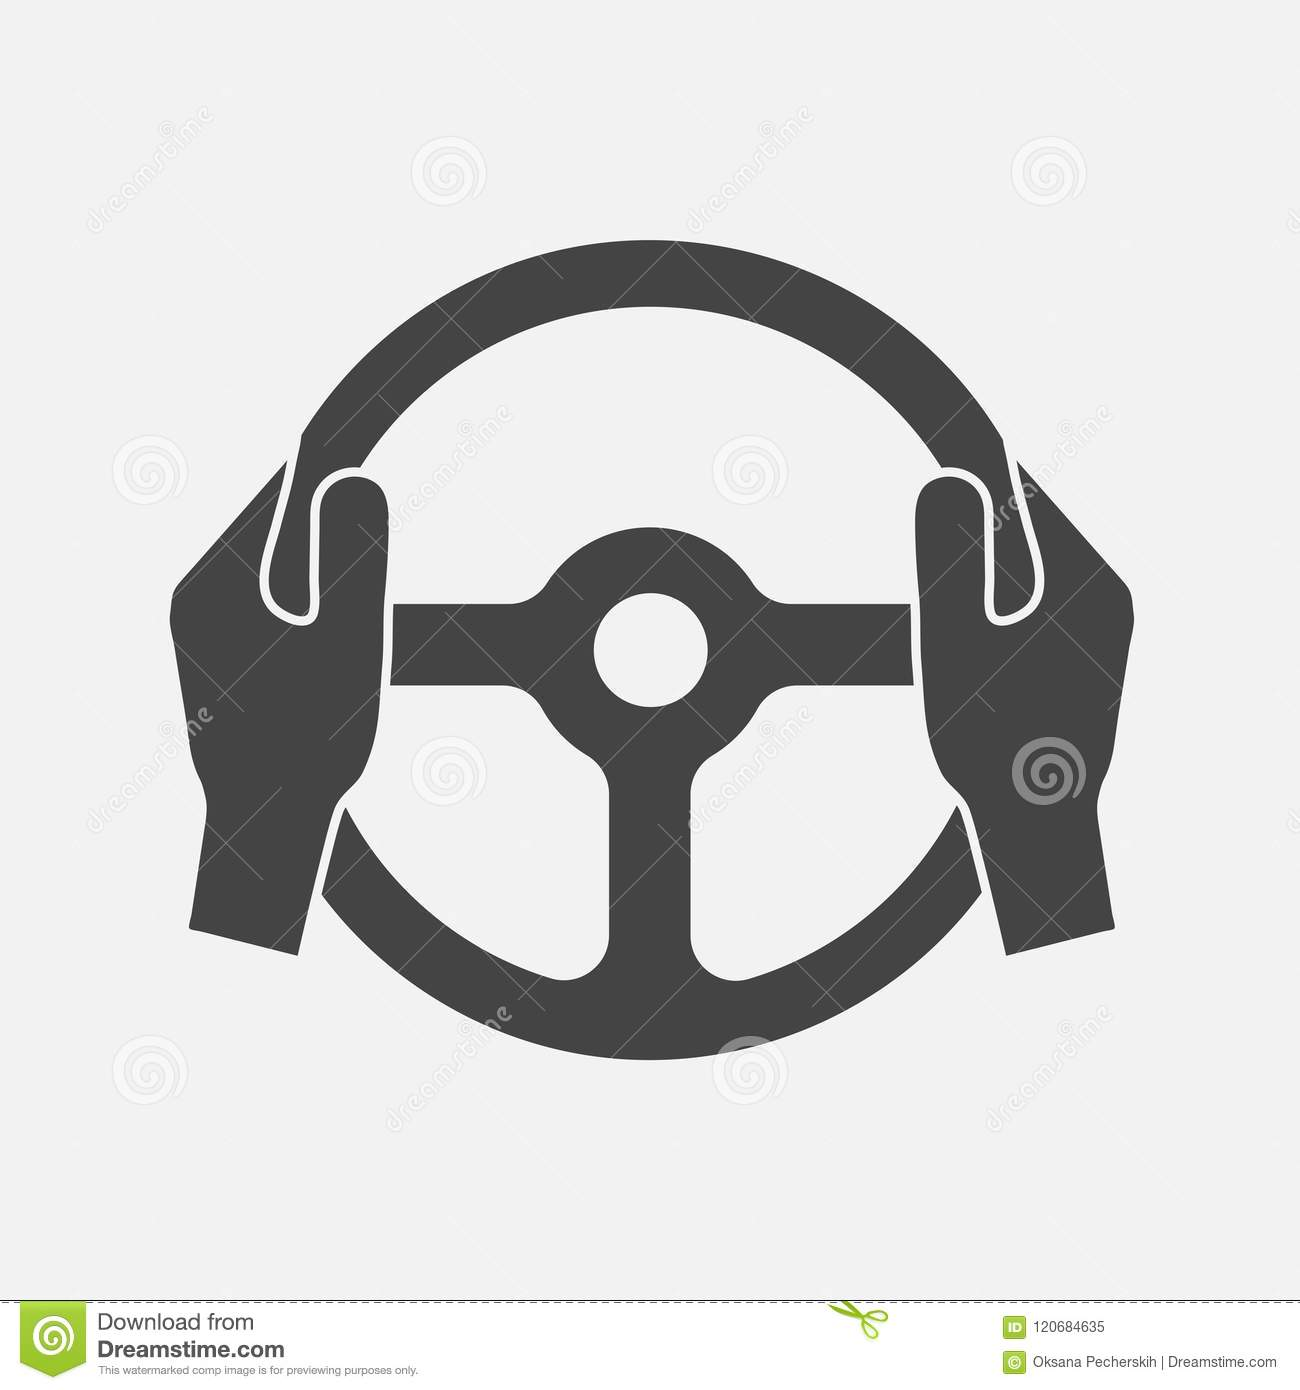 Vector Icon Of Car Steering Wheel And Driver S Hands Layers